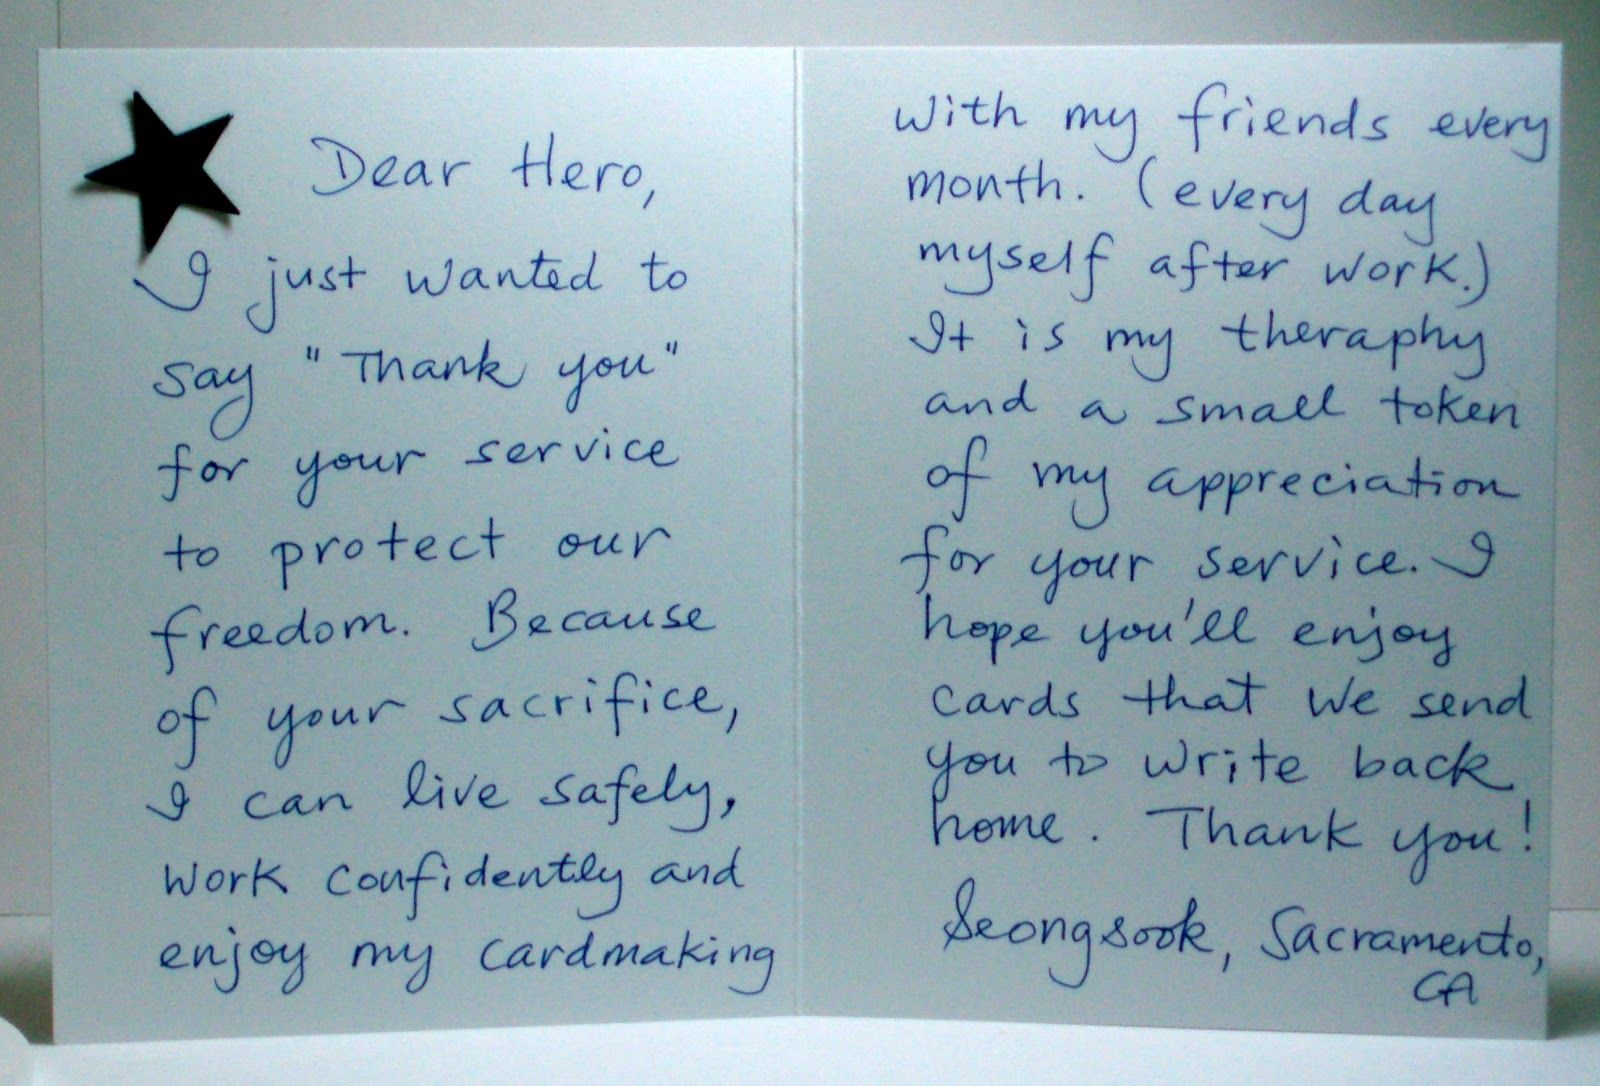 Sample letter of thanks to our servicemen.  Letters to veterans